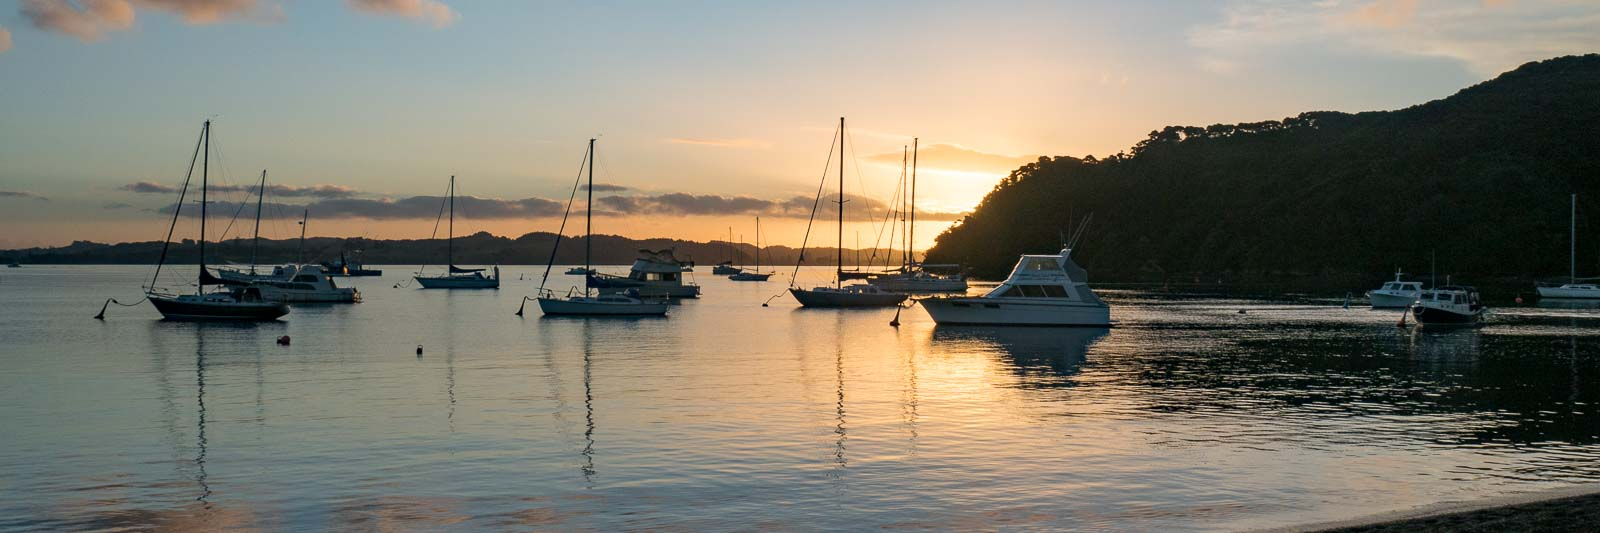 Sunset in Russell, Bay of Islands, New Zealand